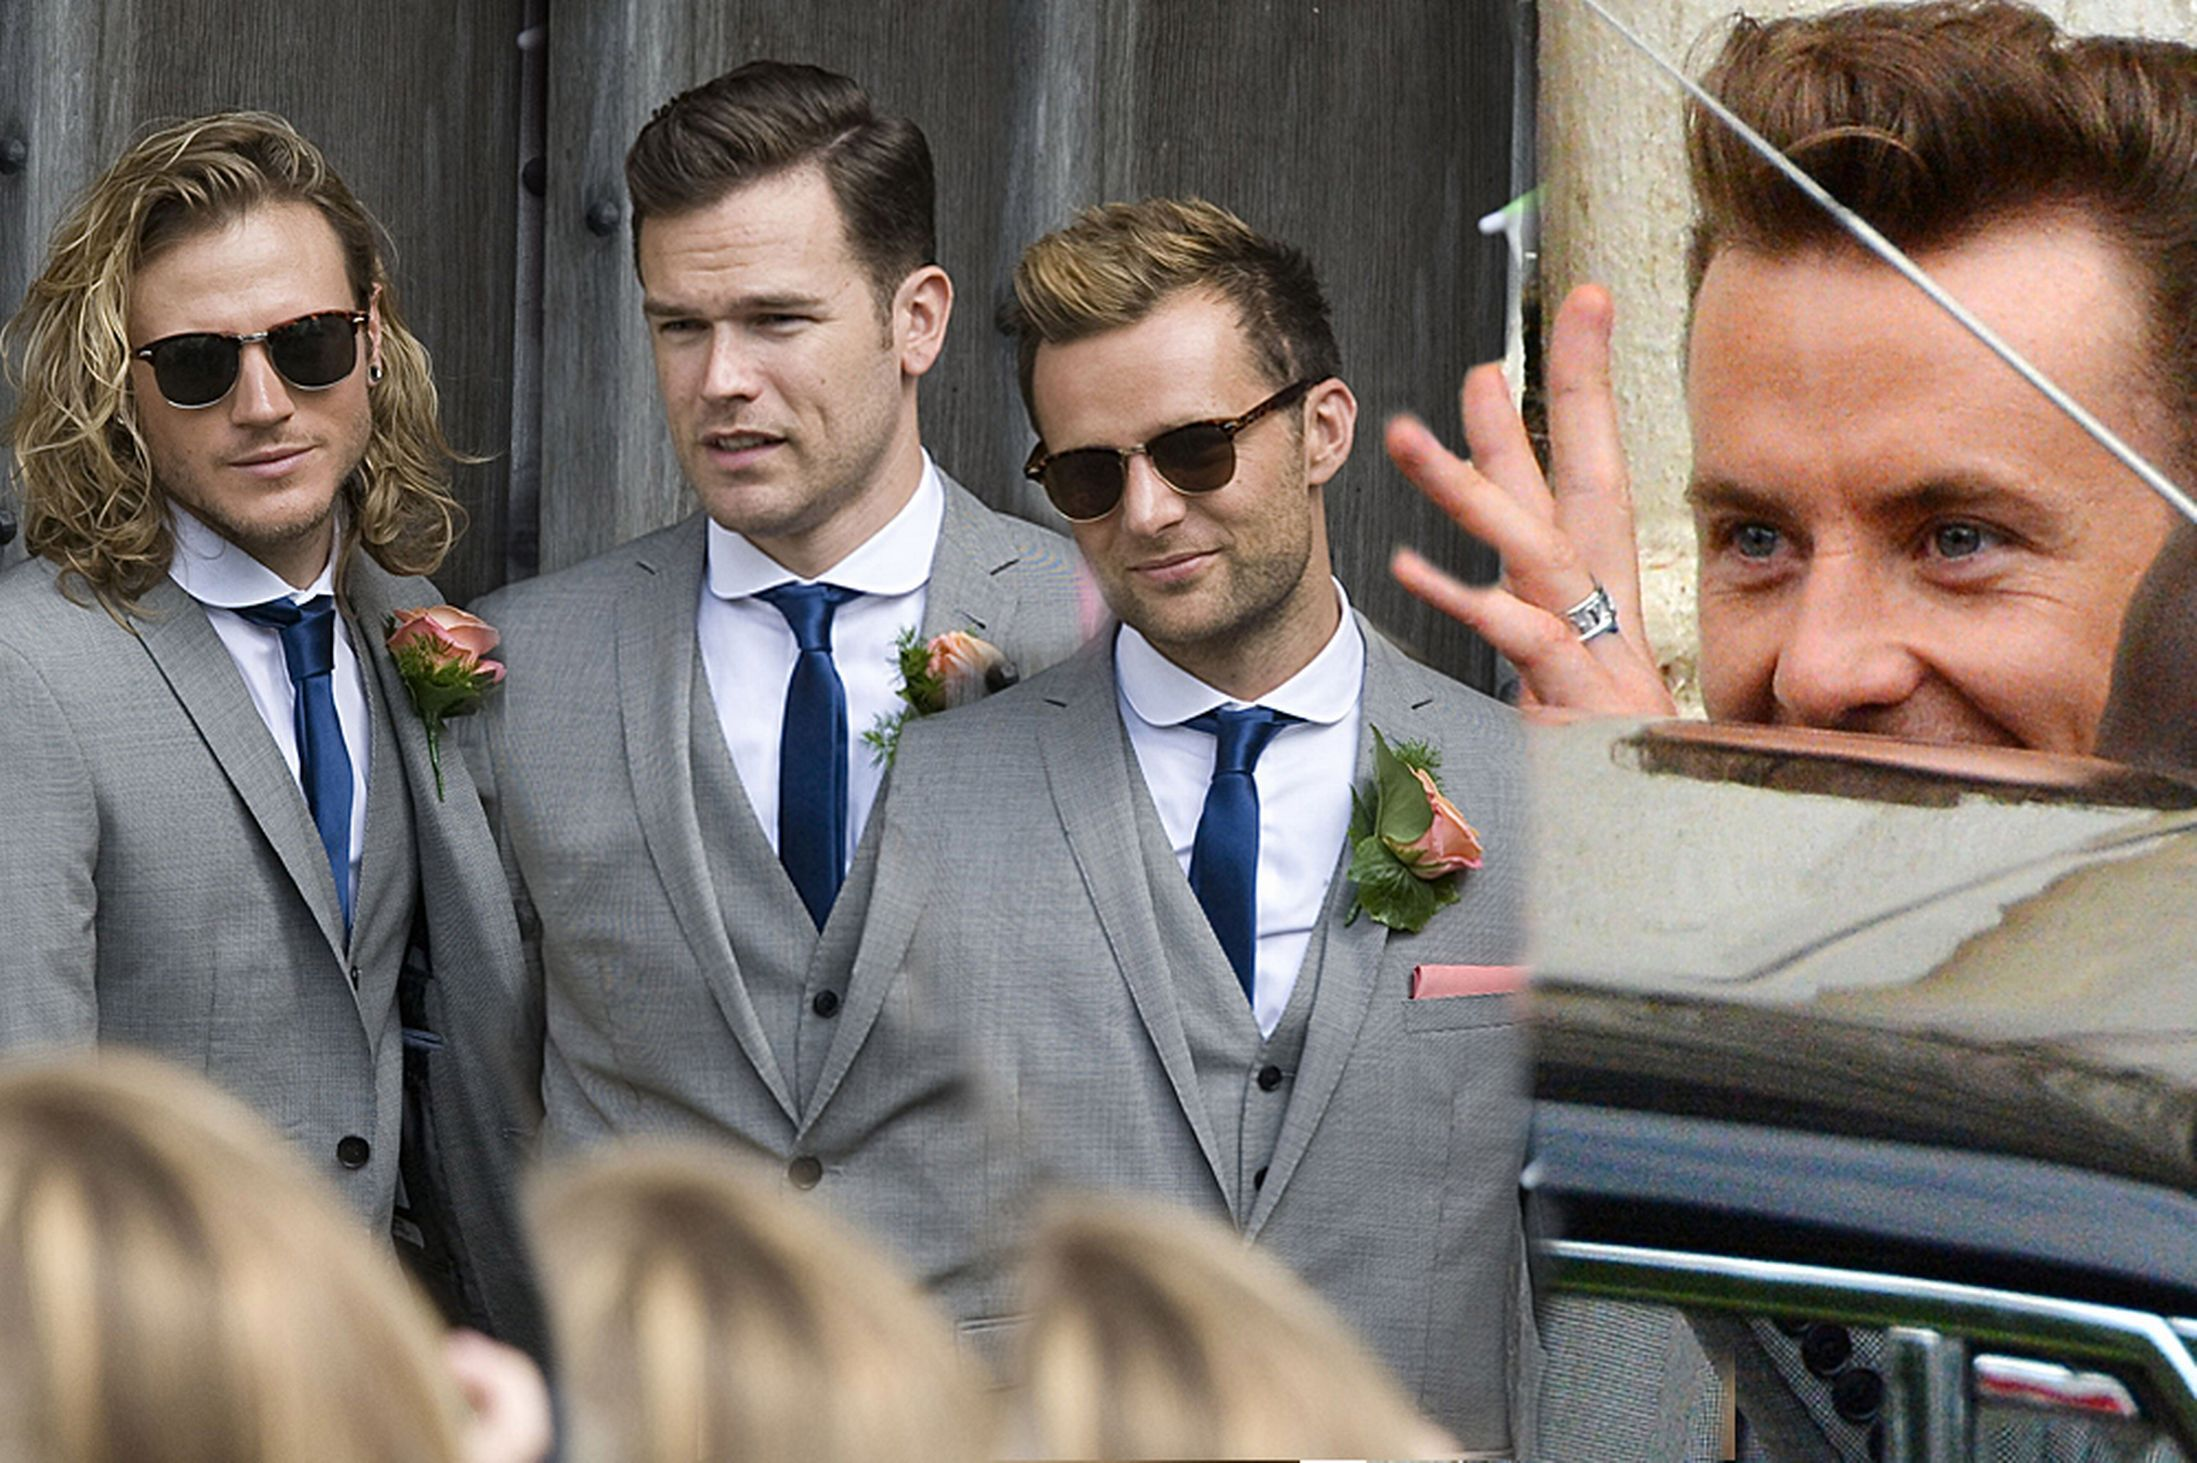 It S A Mcfly Wedding Danny Jones Getched And Dougie Poynter Ellie Goulding